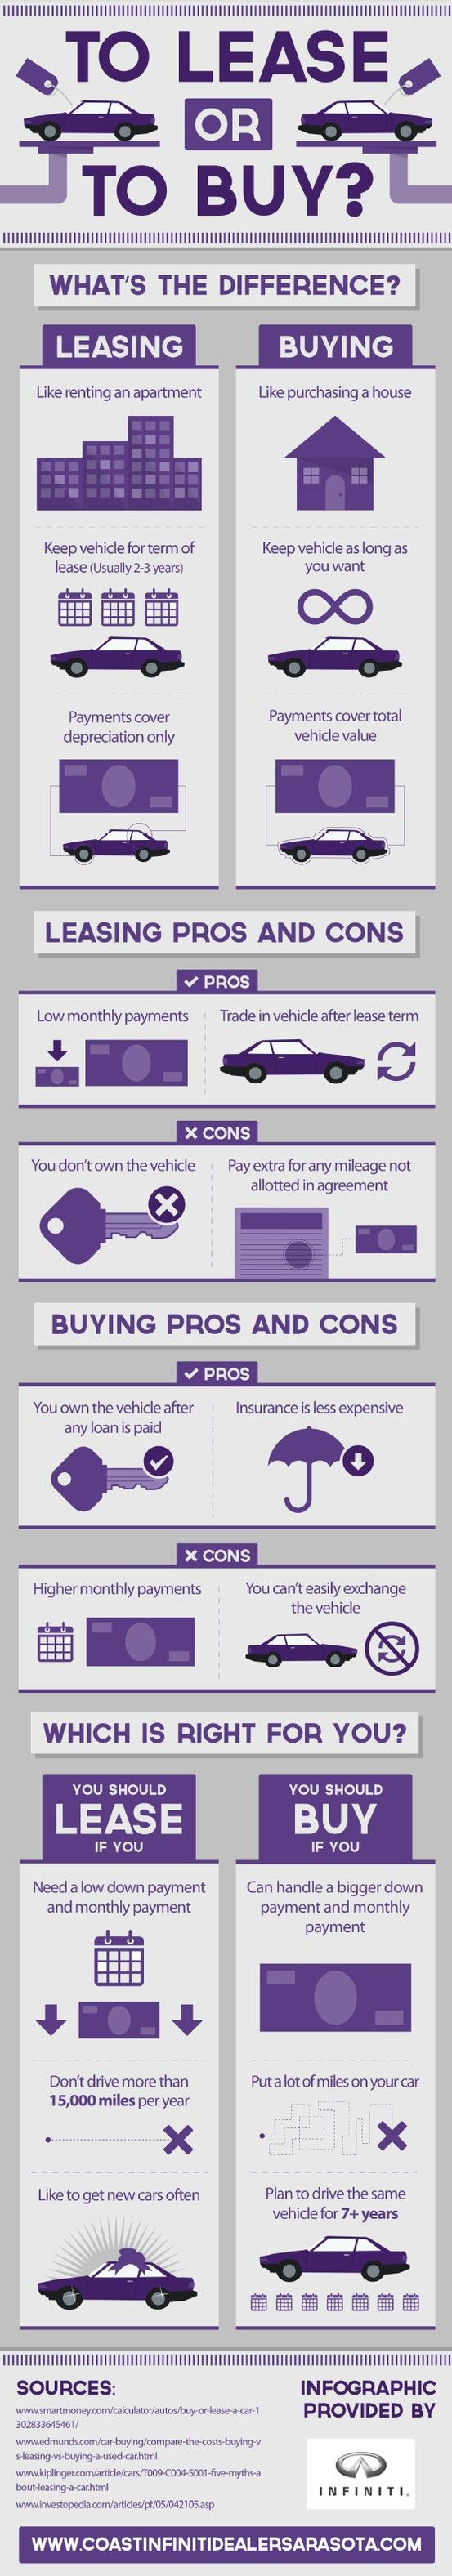 What are the differences between leasing and buying a car? Leasing a car results in lower monthly and down payments, but buying a car gives you ownership after the loan is paid. Find out which option is right for you by reading this infographic.